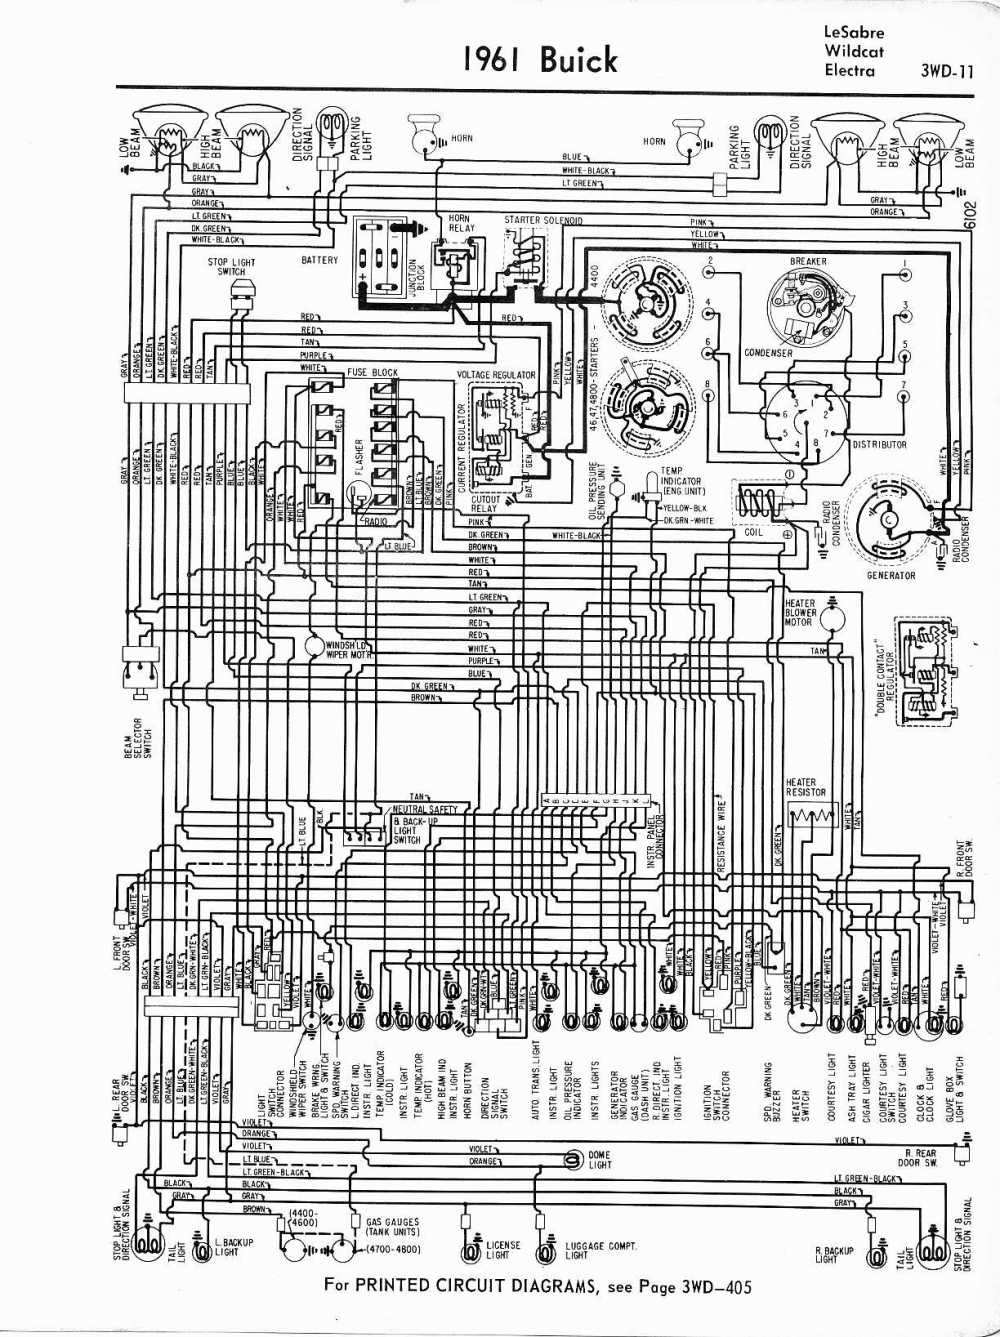 medium resolution of wrg 7679 buick lucerne starter wiring diagram buick century cooling fan wiring on 2005 buick lacrosse parts diagram